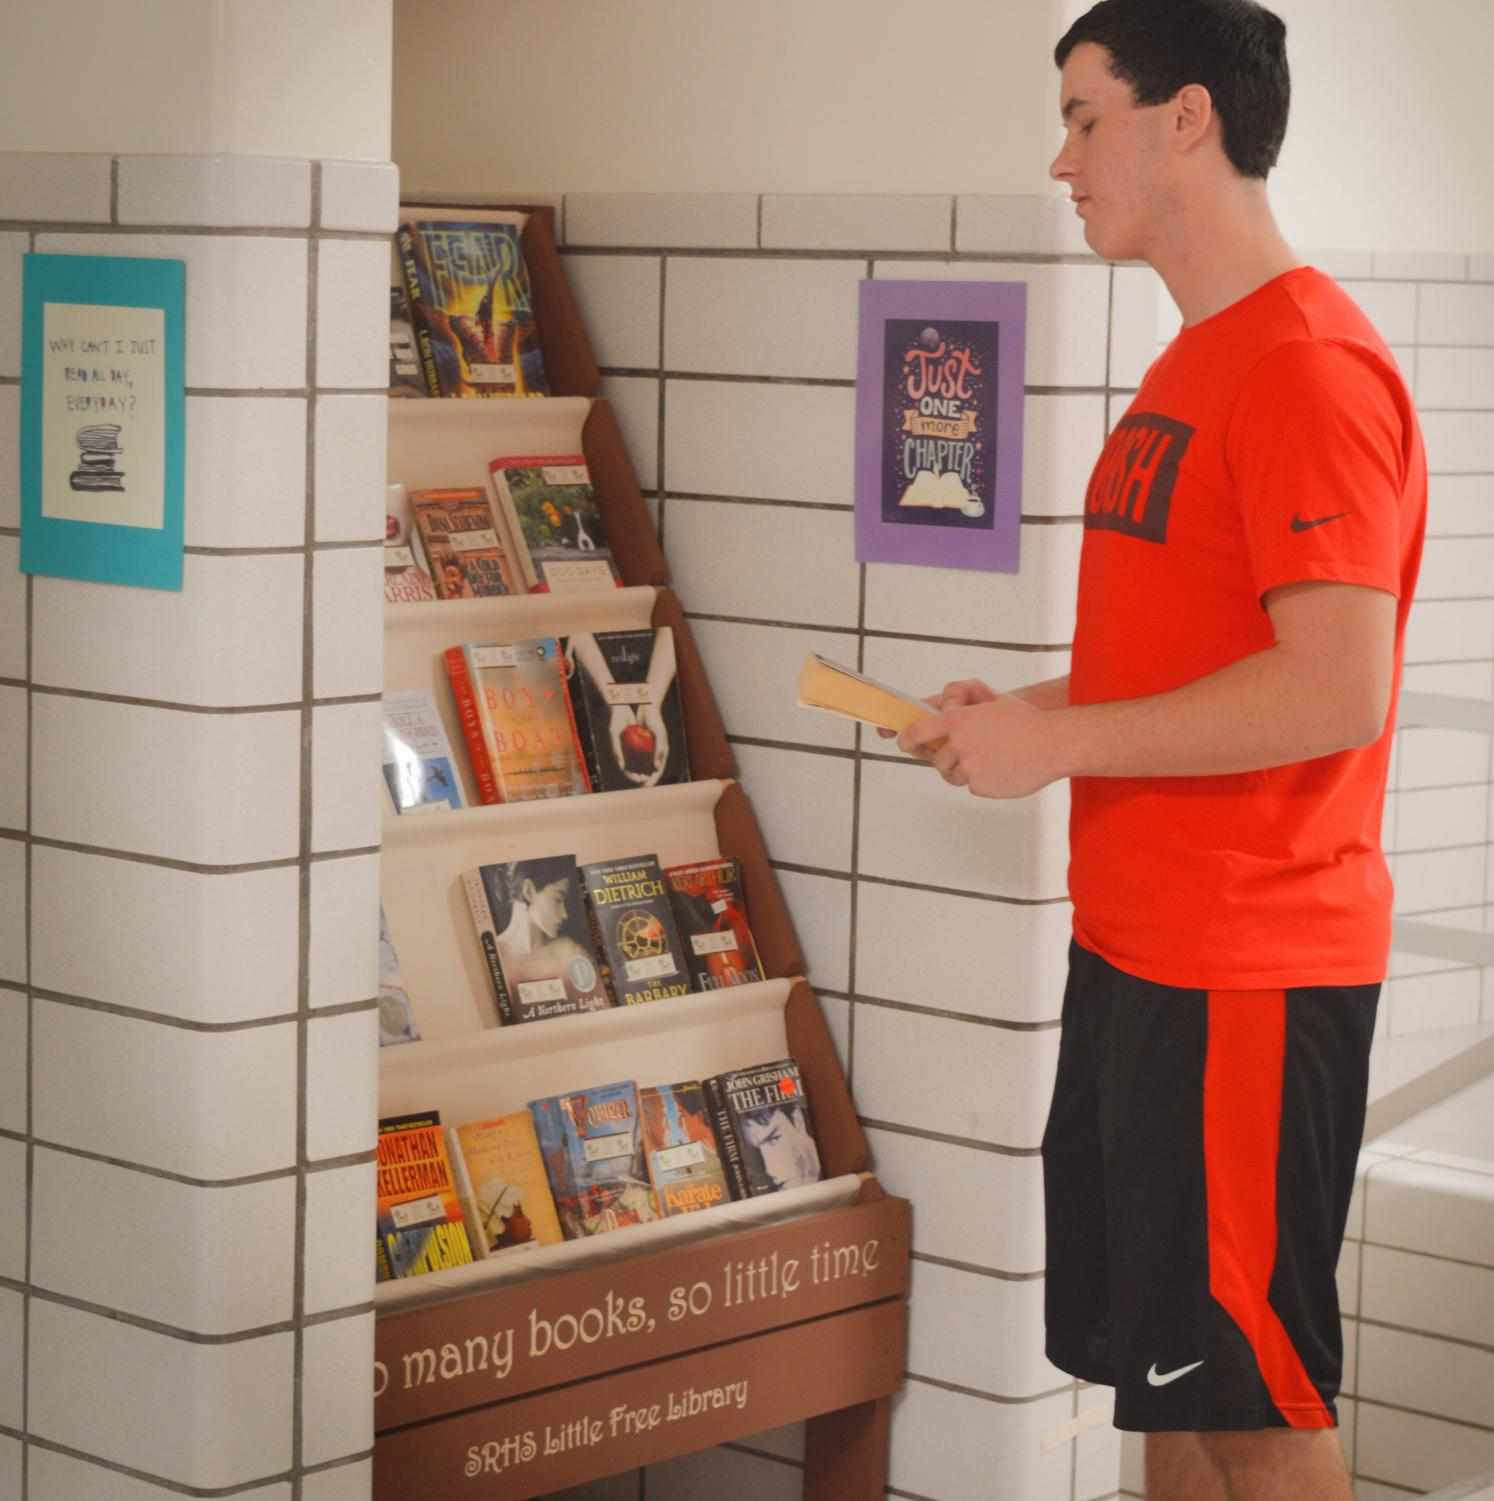 Junior Logan Croll takes advantage of the books in the new free library created by Mrs. Elford.